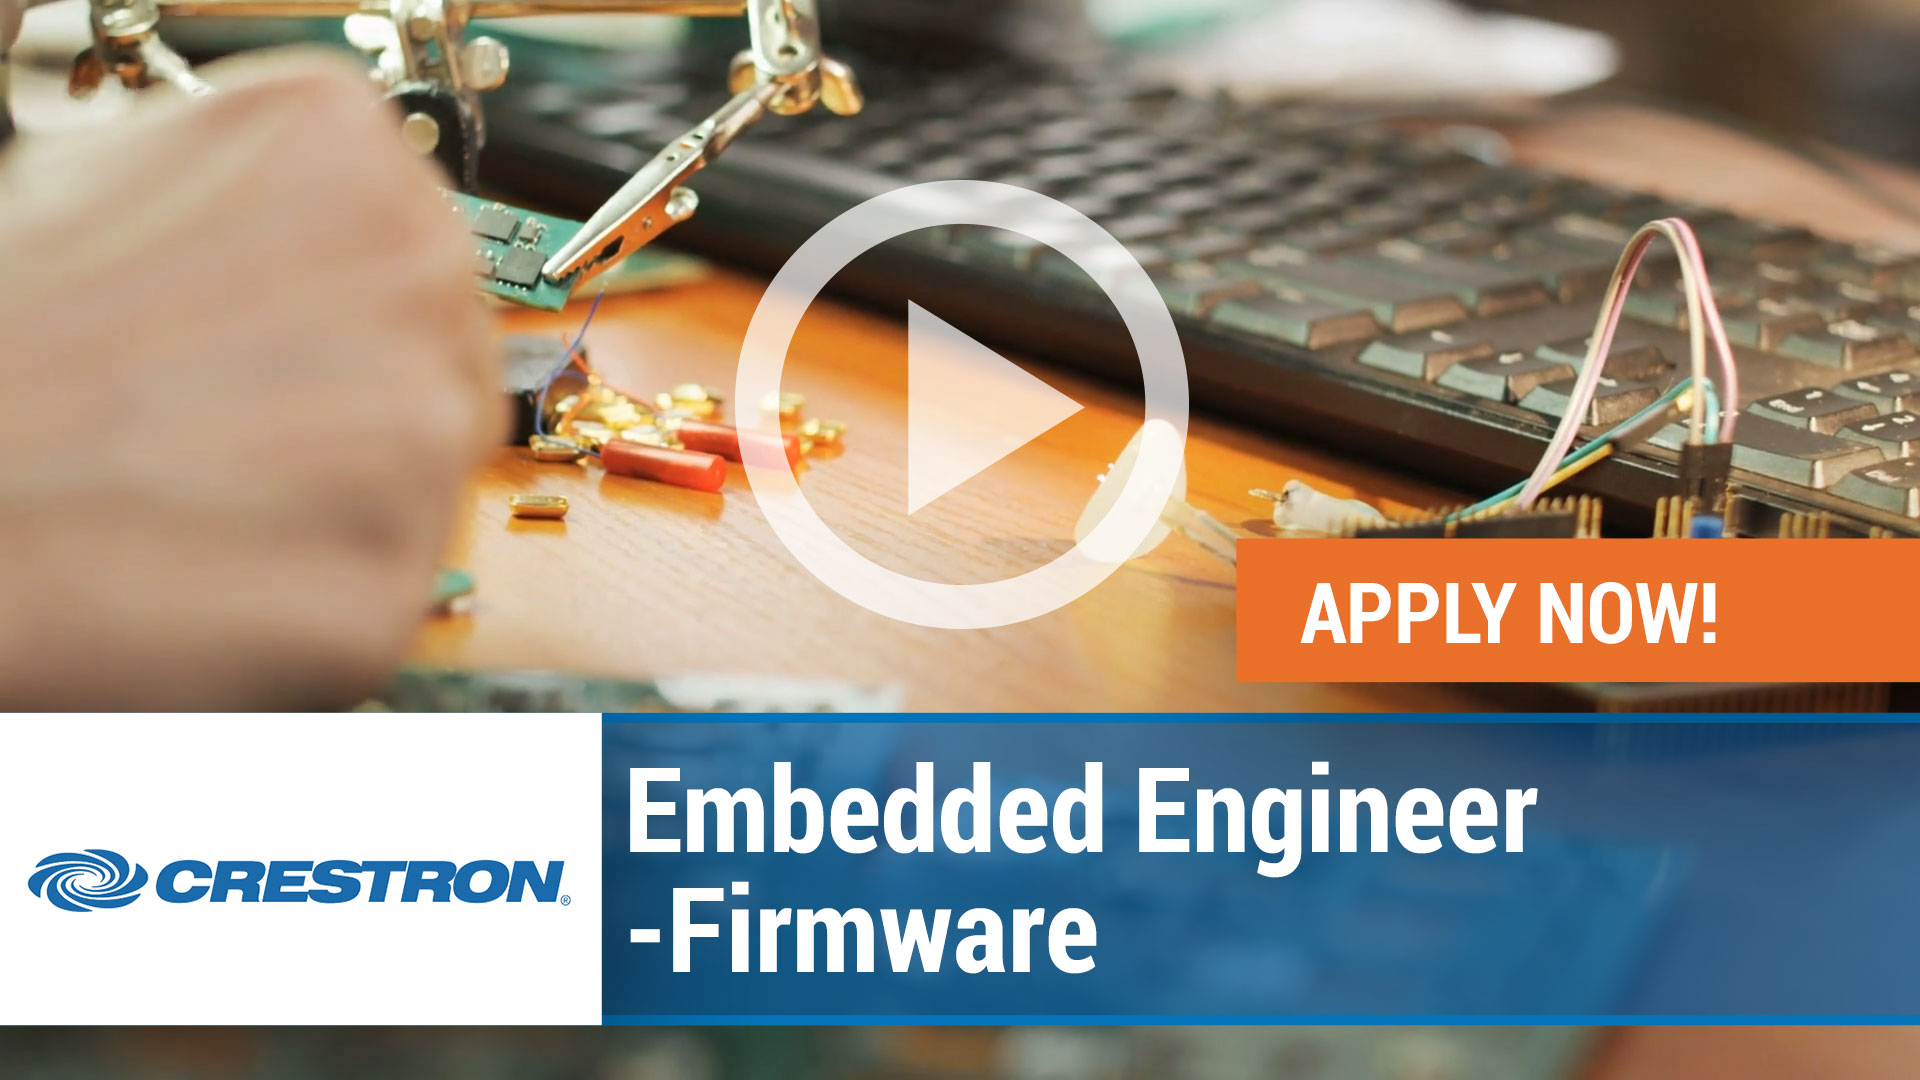 Watch our careers video for available job opening Embedded Engineer - Firmware in Rockleigh New Jersey, Plano T